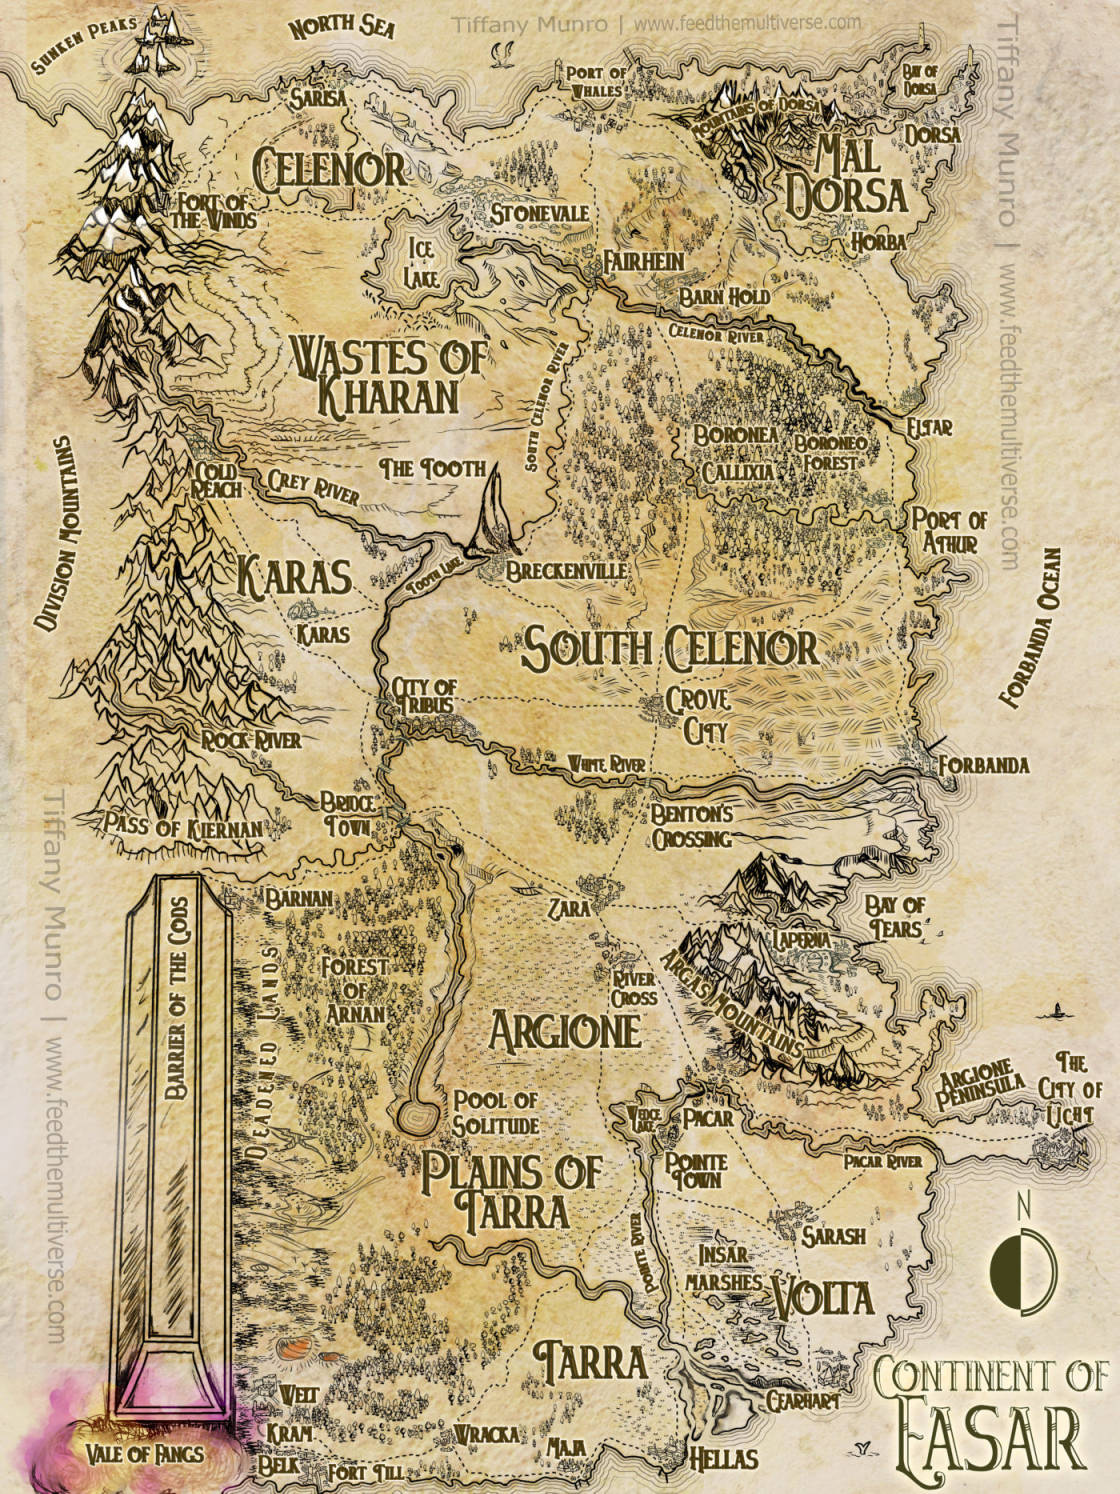 Parchment dungeons and dragons map in Tolkien cartography style how to commission a custom map get cartography made for my DnD campaign D&D RPG gamer map